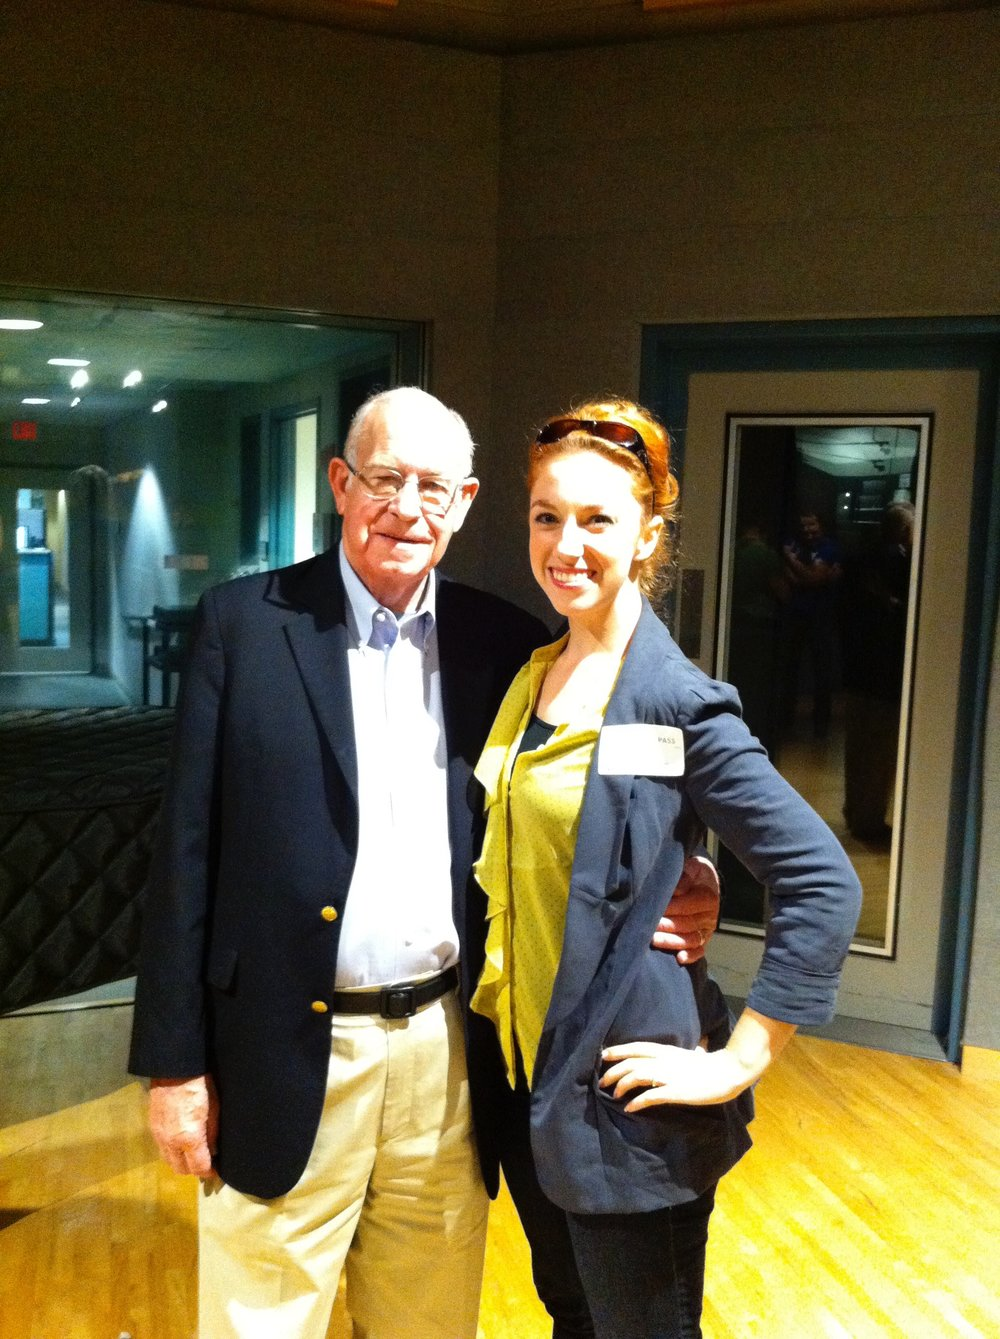 A visit to the NPR offices, where I met the legendary Carl Kassel - we bonded over both having been in the Lost Colony!